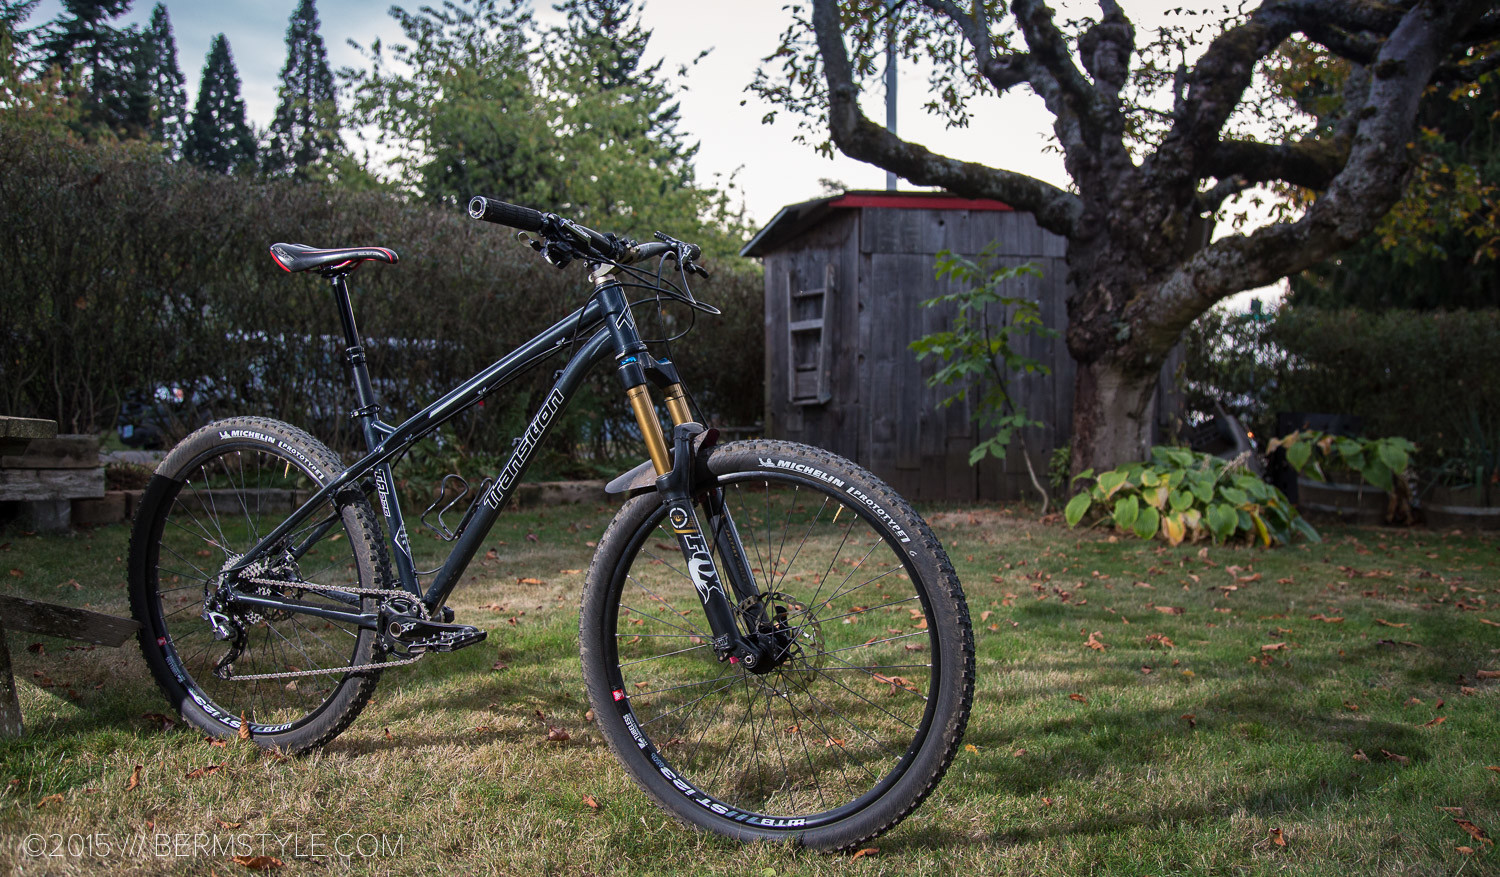 The 650b TransAm from Transition Bicycles